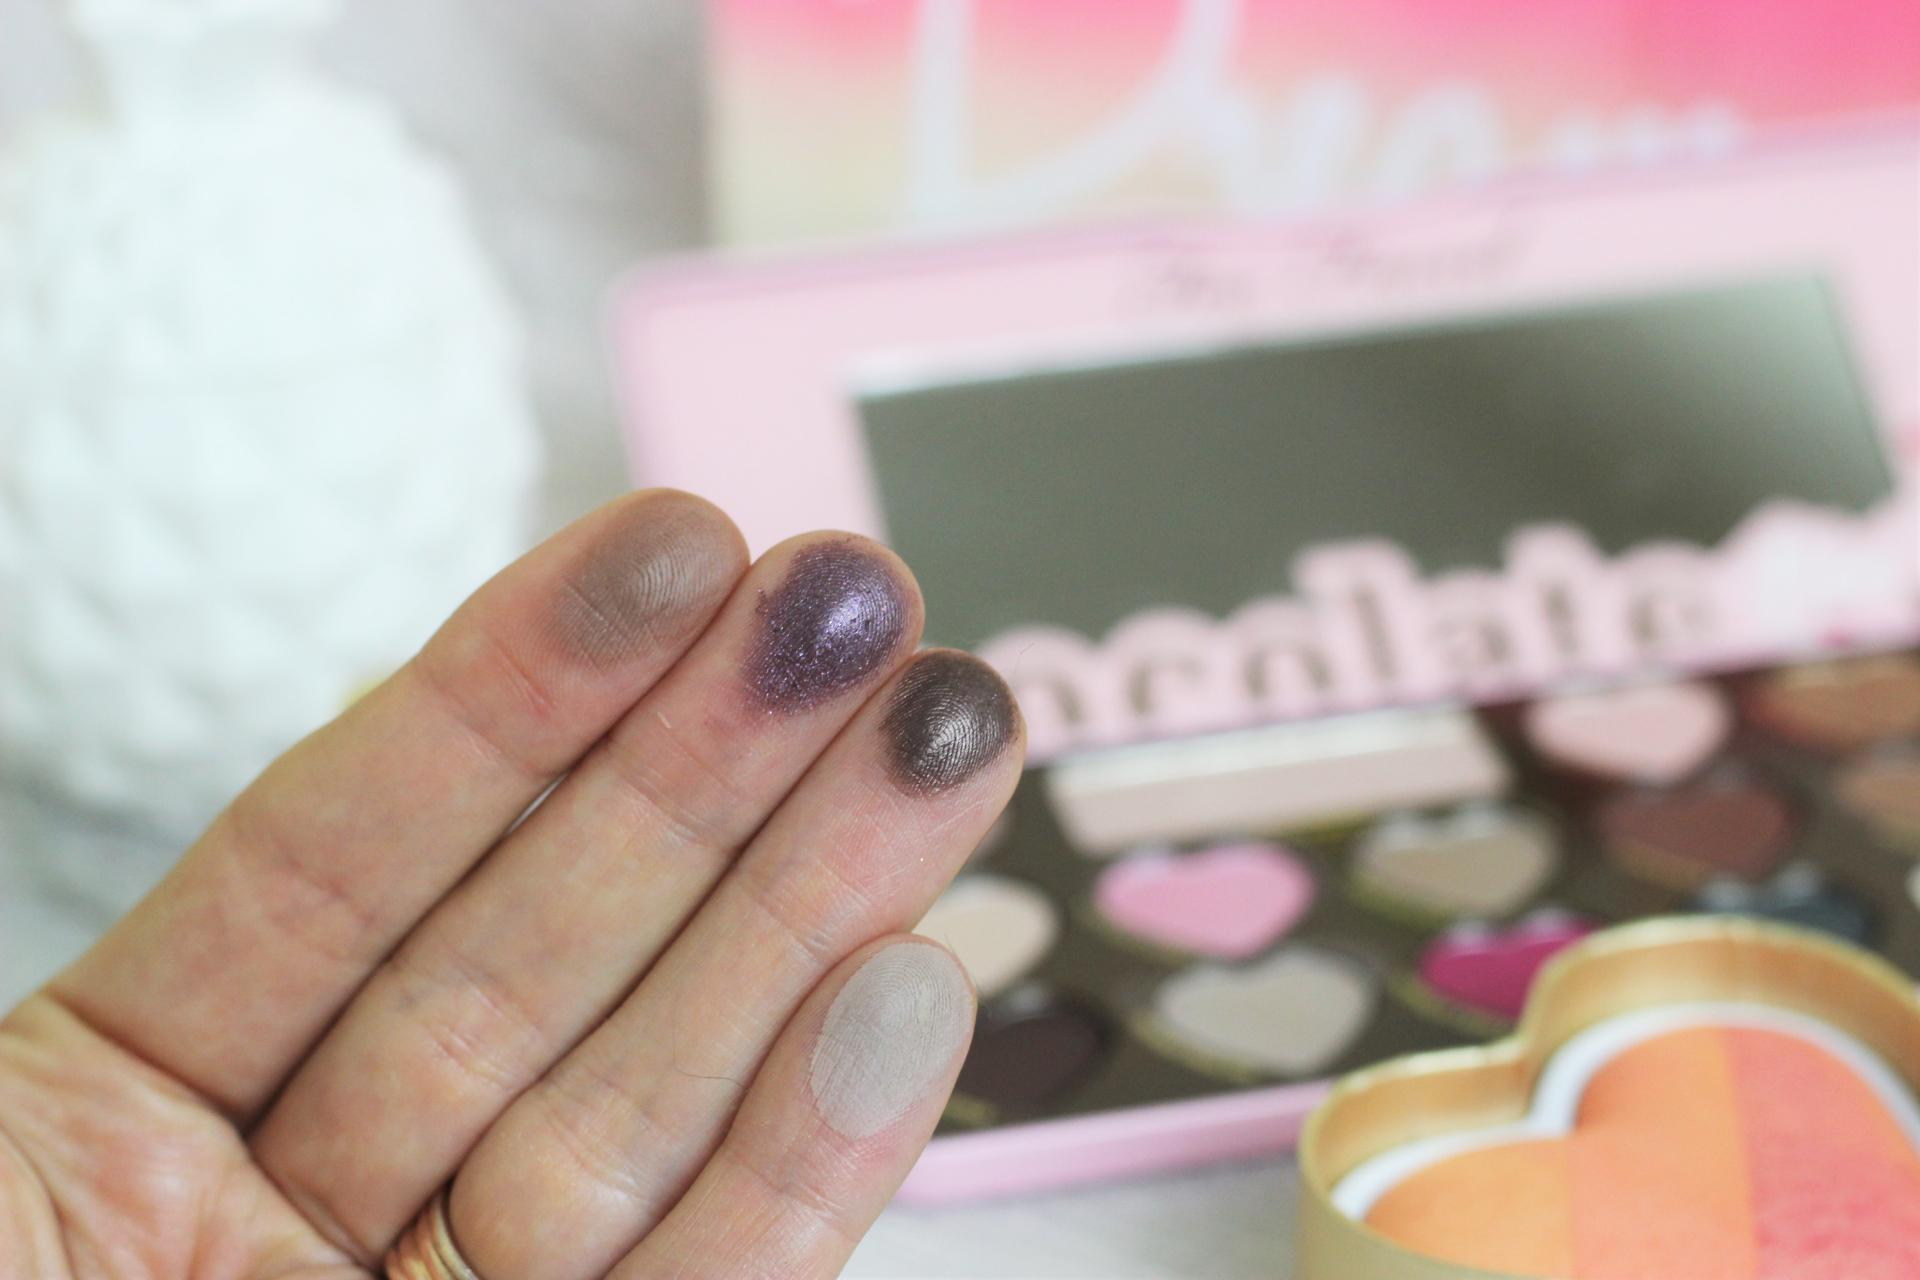 Too Faced Chocolate Bons Bons Palette